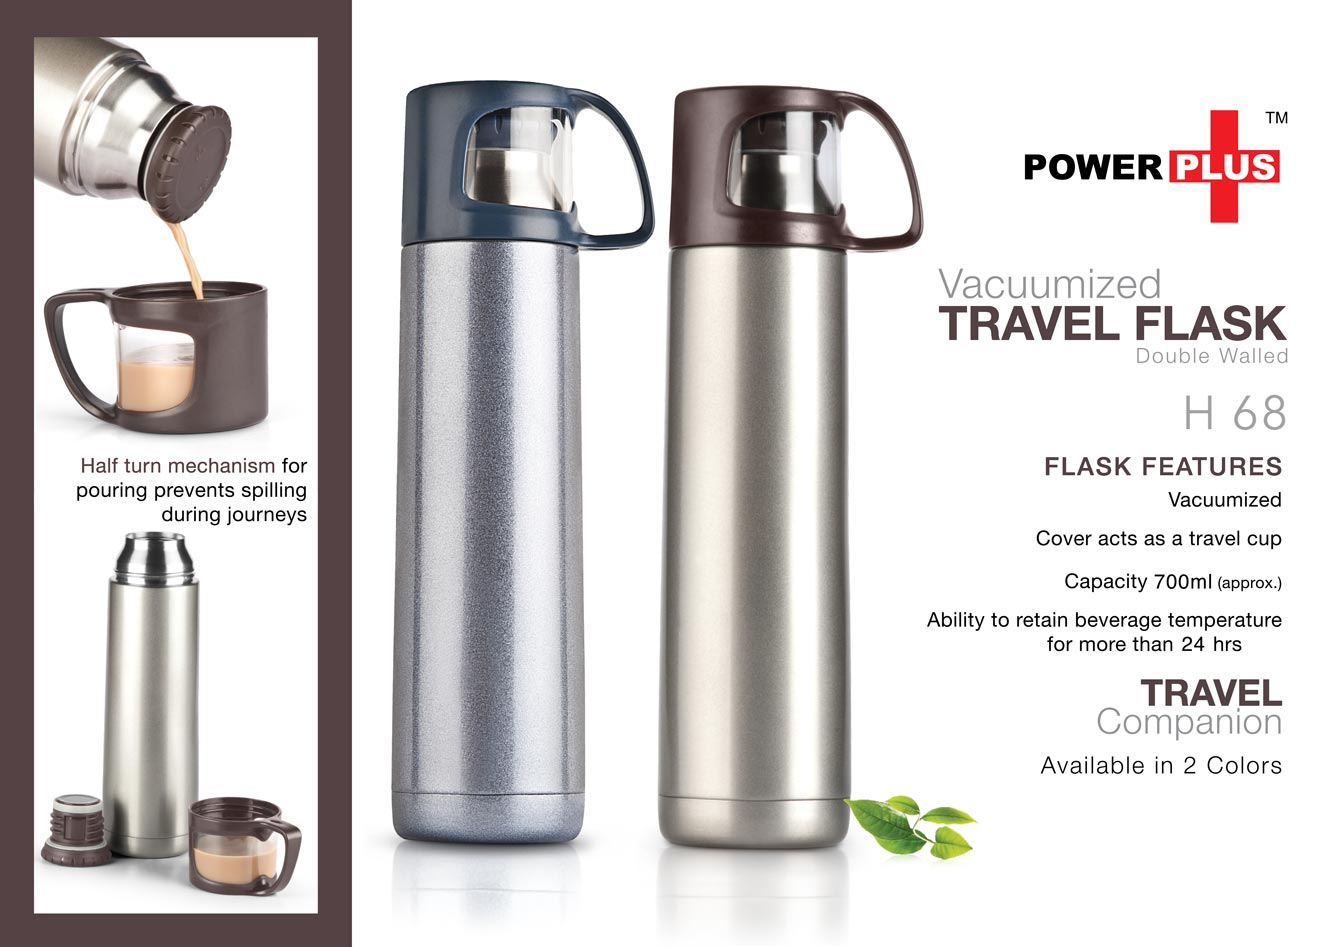 Power Plus Vacuumized travel flask (700 ml)